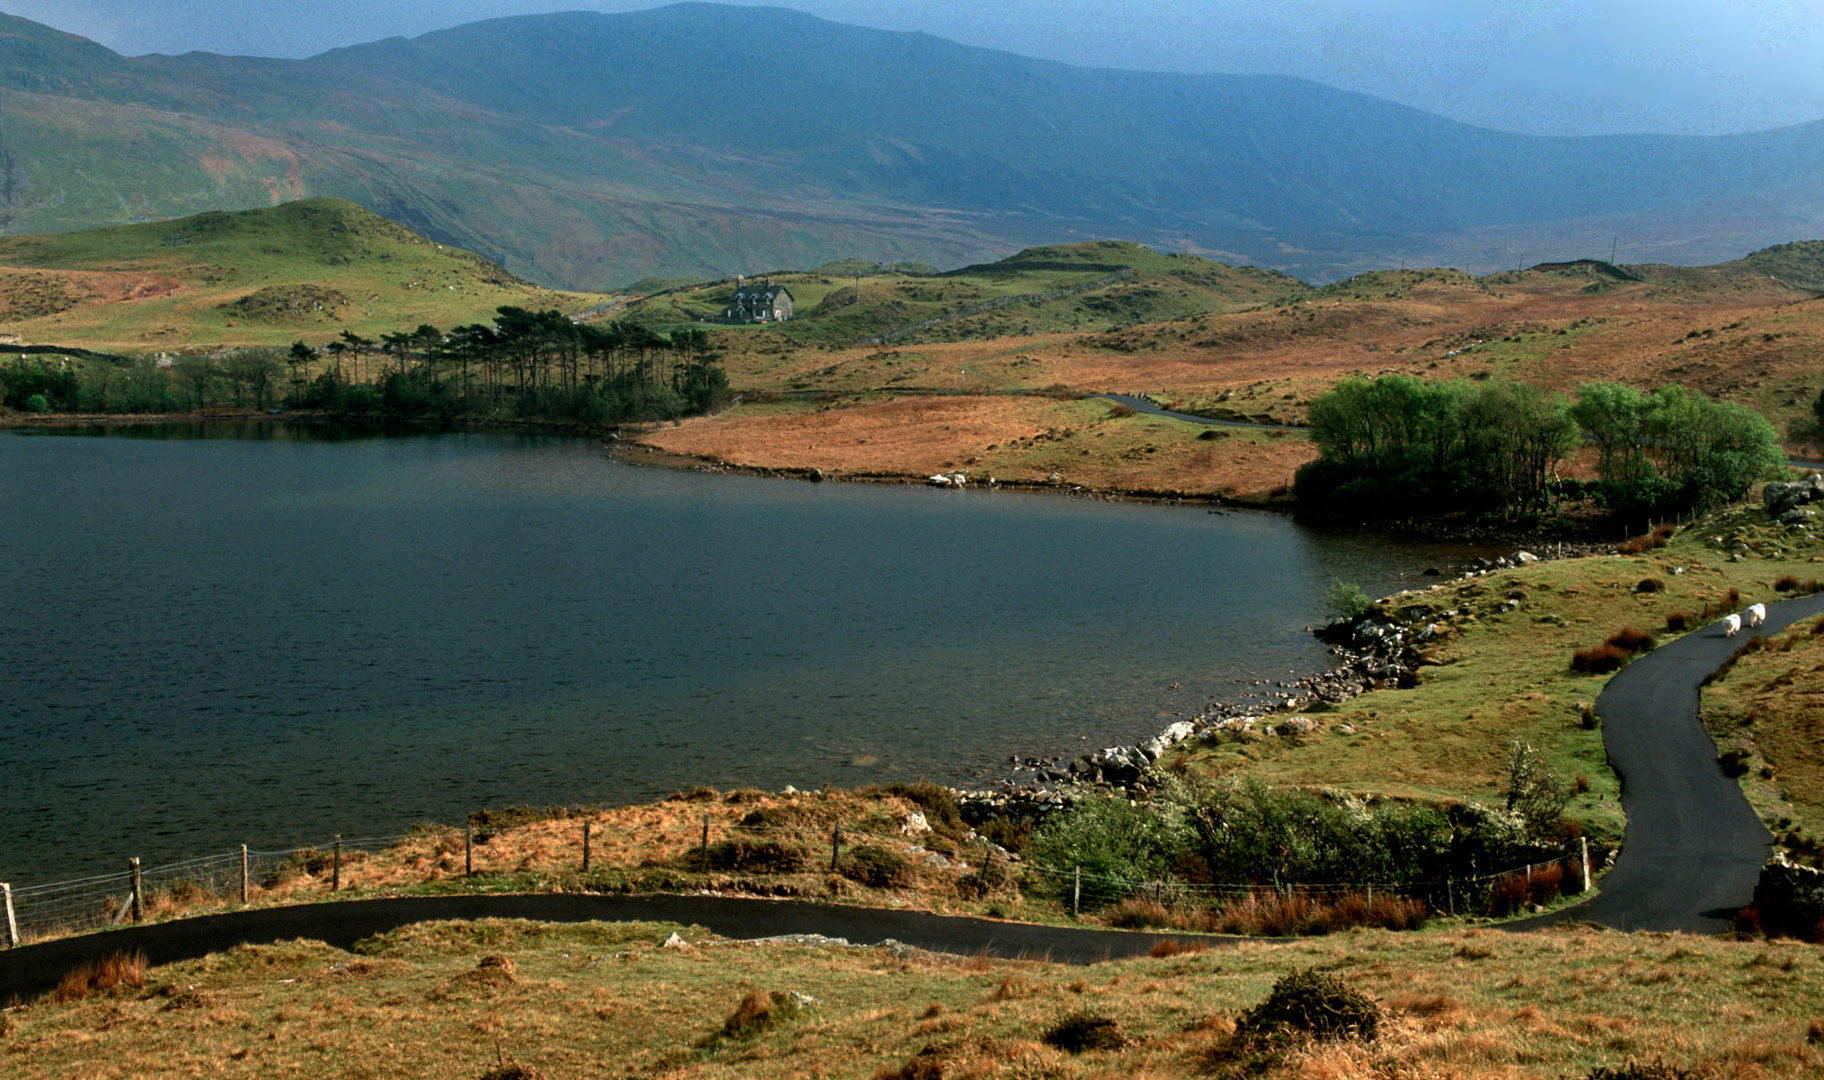 Tal-y-Llyn-Lake, au pied du Cadair Idris,National Park,2000.